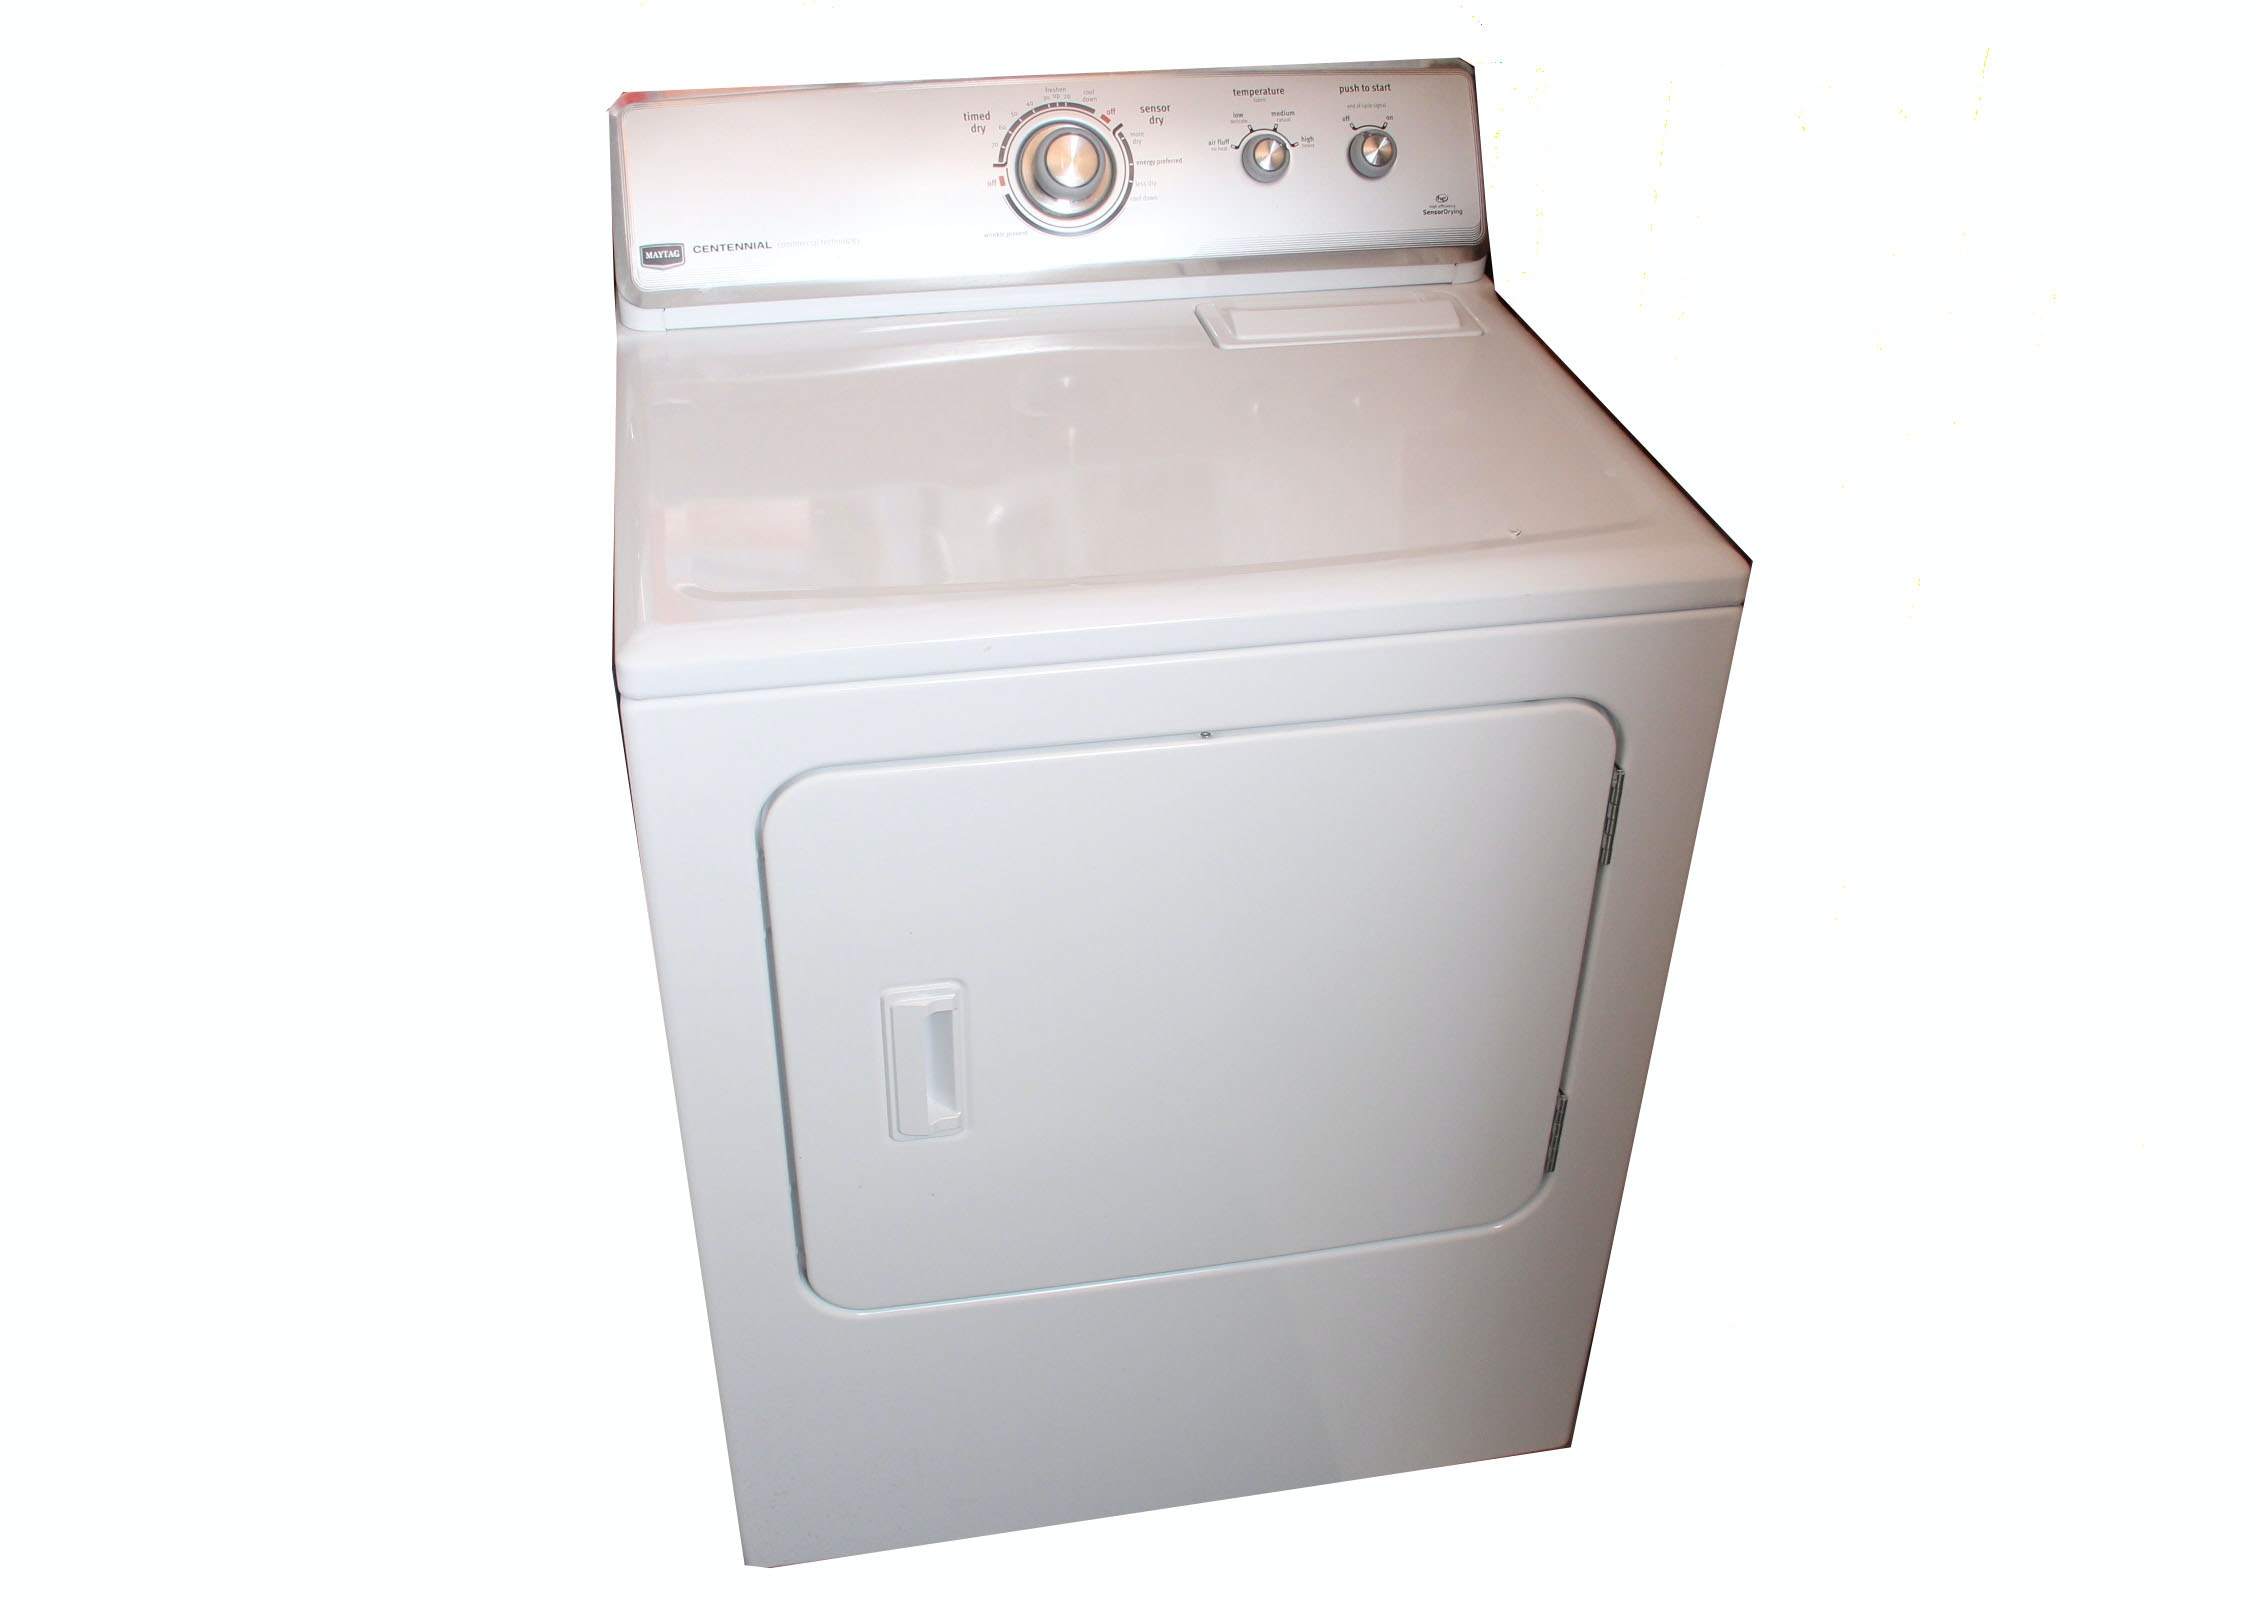 IMG_4898?ixlib=rb 1.1.0&w=781&h=855&fit=max&crop=&auto=format maytag centennial dryer ebth  at bakdesigns.co